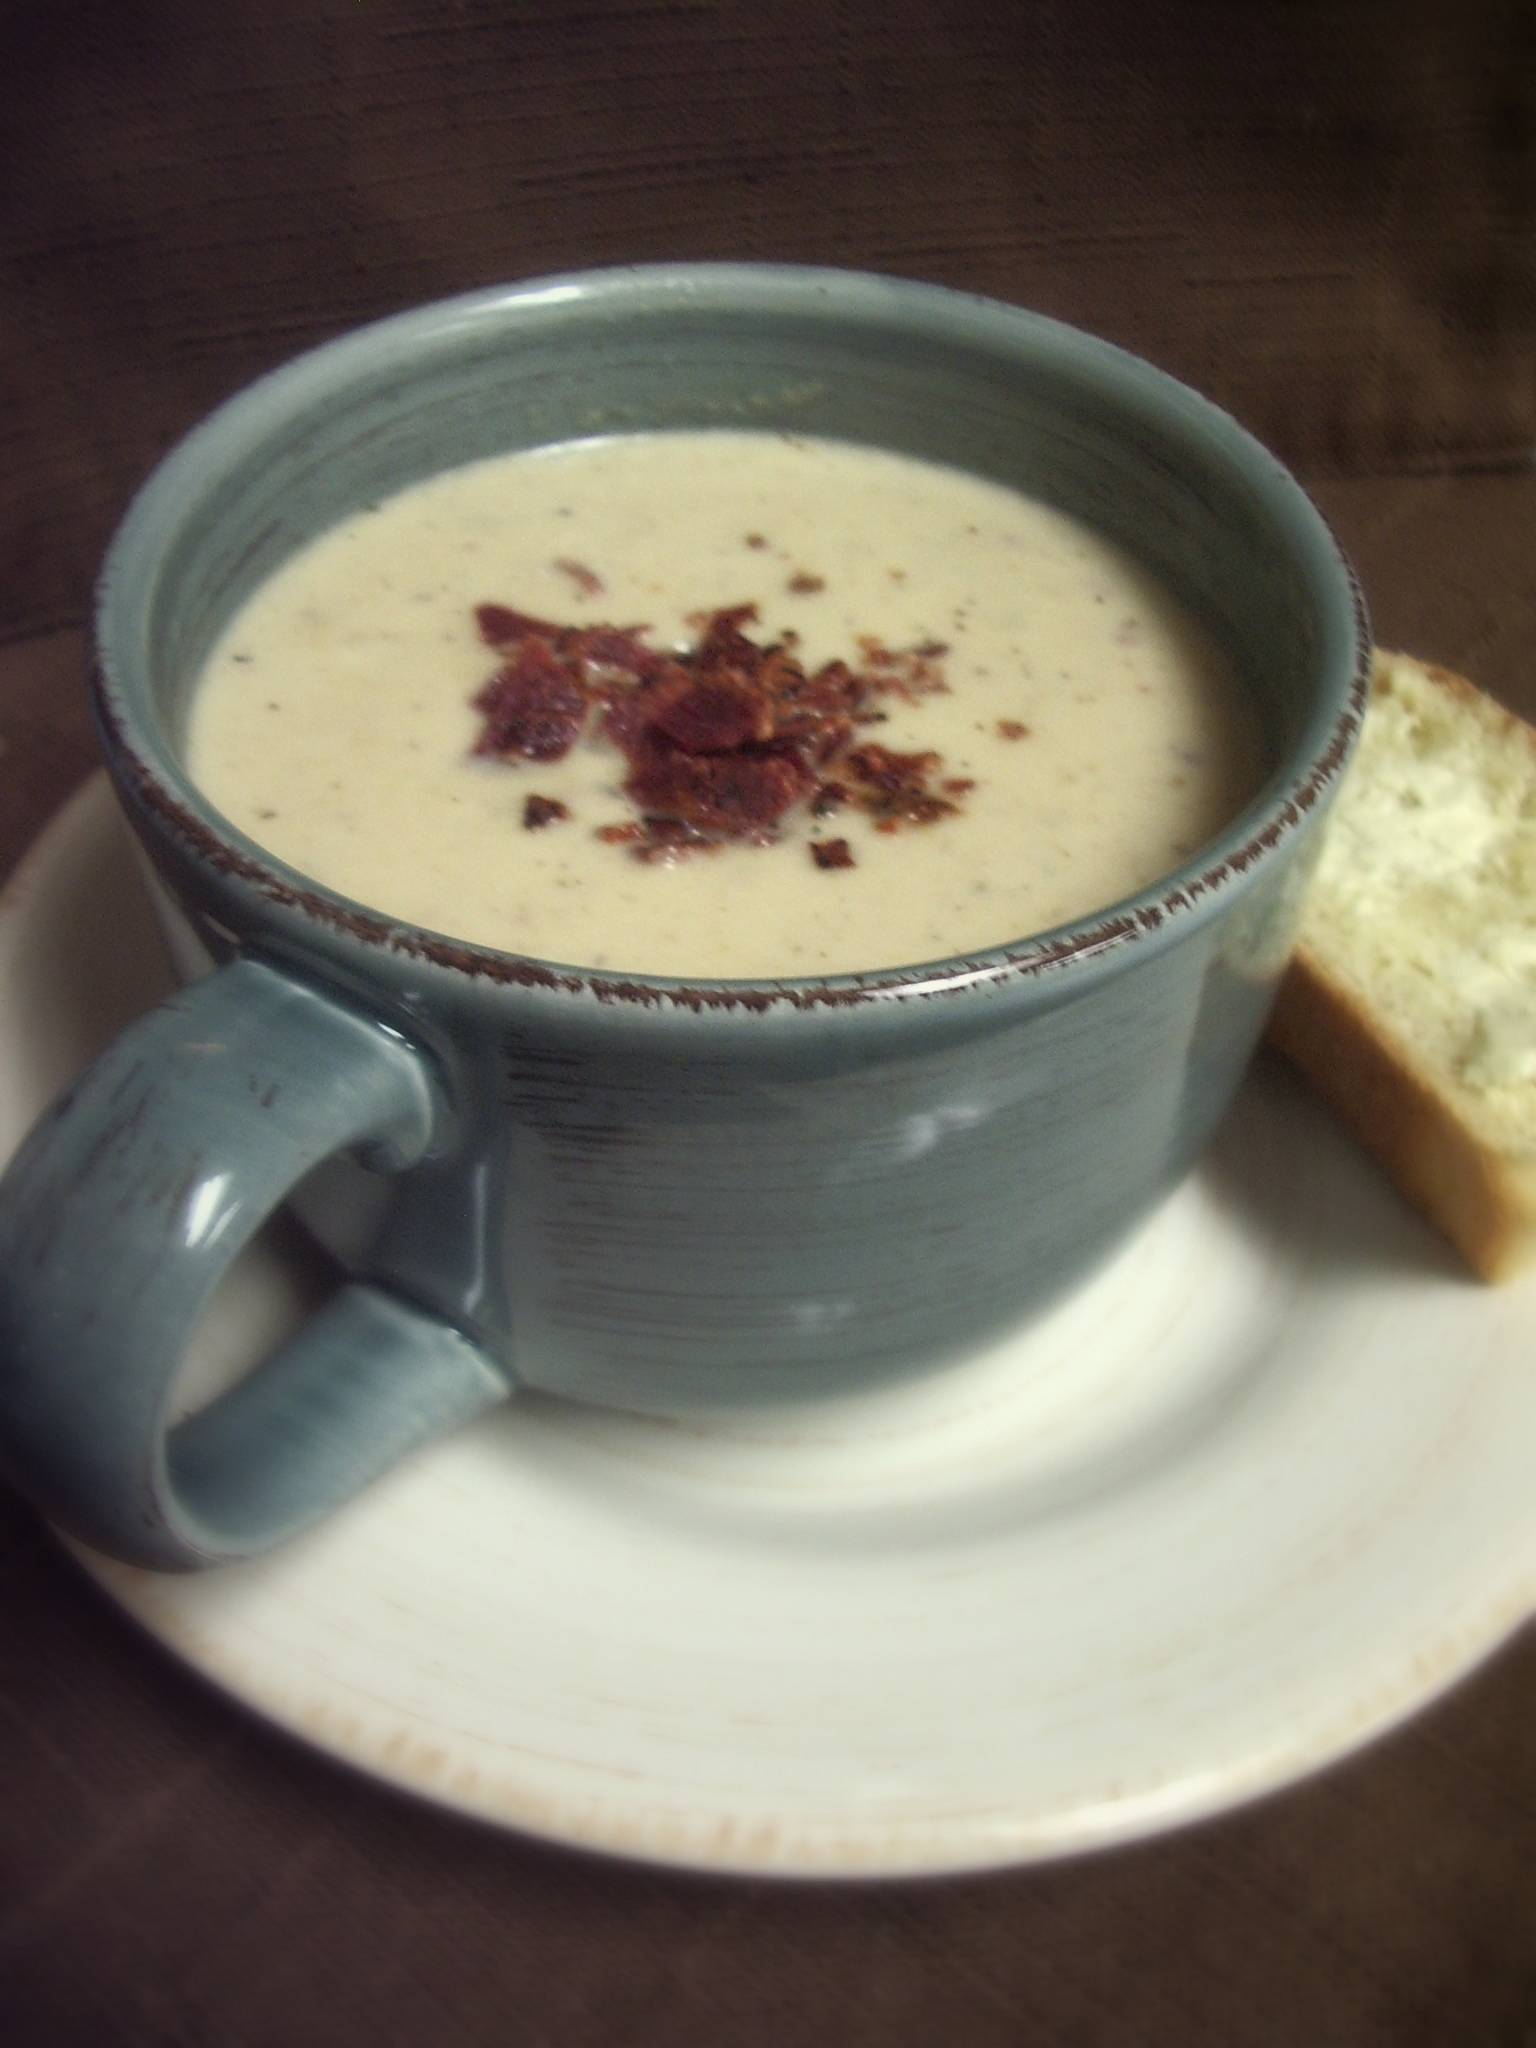 Roasted Cauliflower and Aged White Cheddar Soup